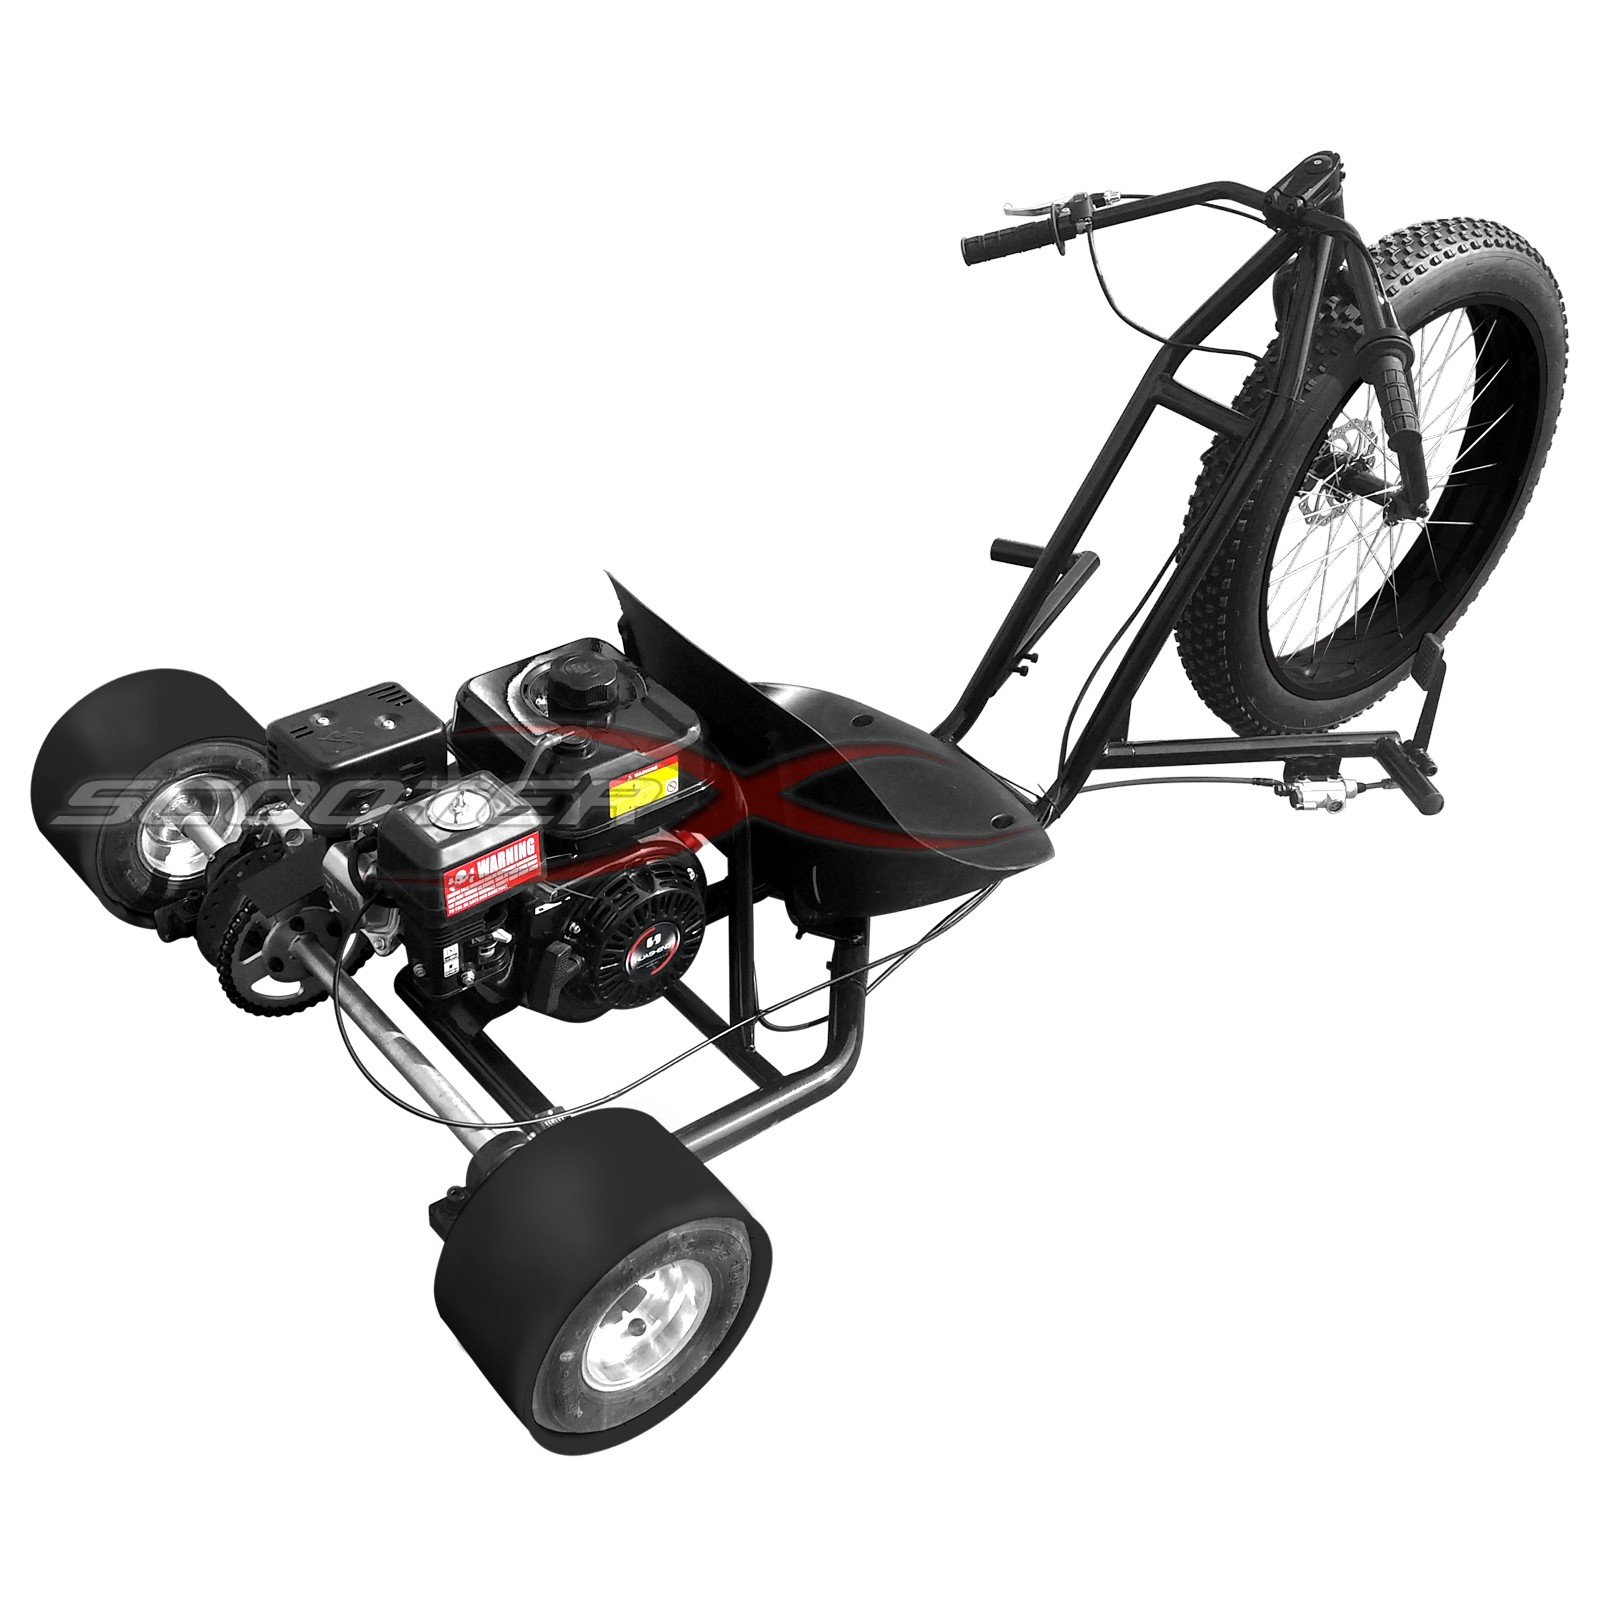 6 5hp Gas Powered Scooterx Drift Trike Aka Big Wheel 3